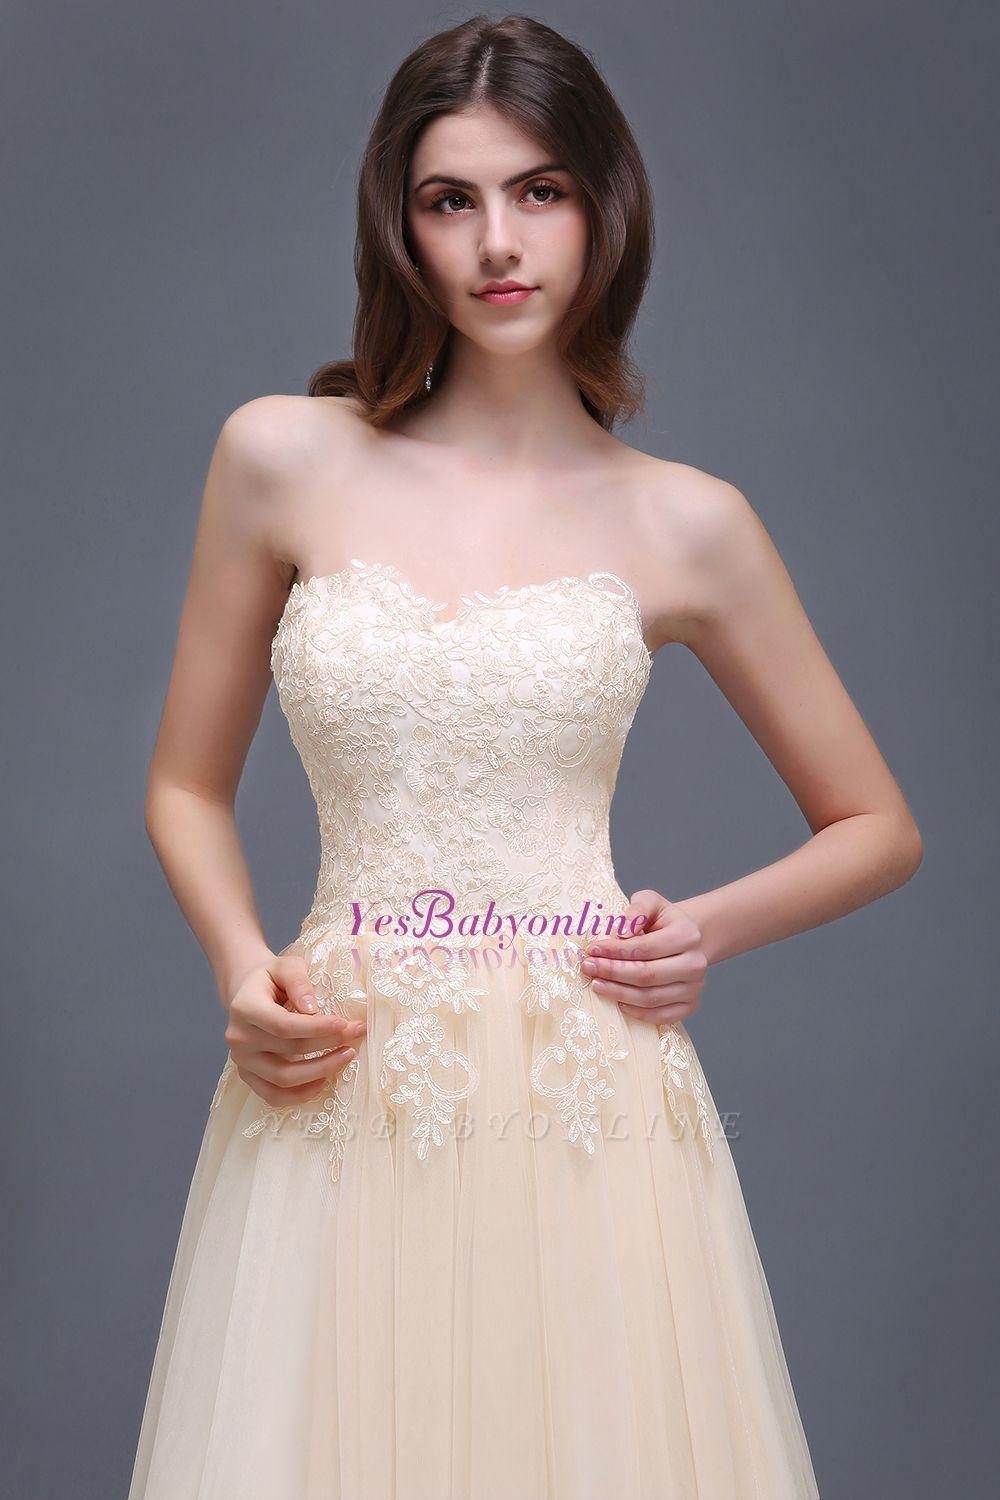 Princess Lace-Appliques Strapless Floor-Length Champagne  Evening Dress